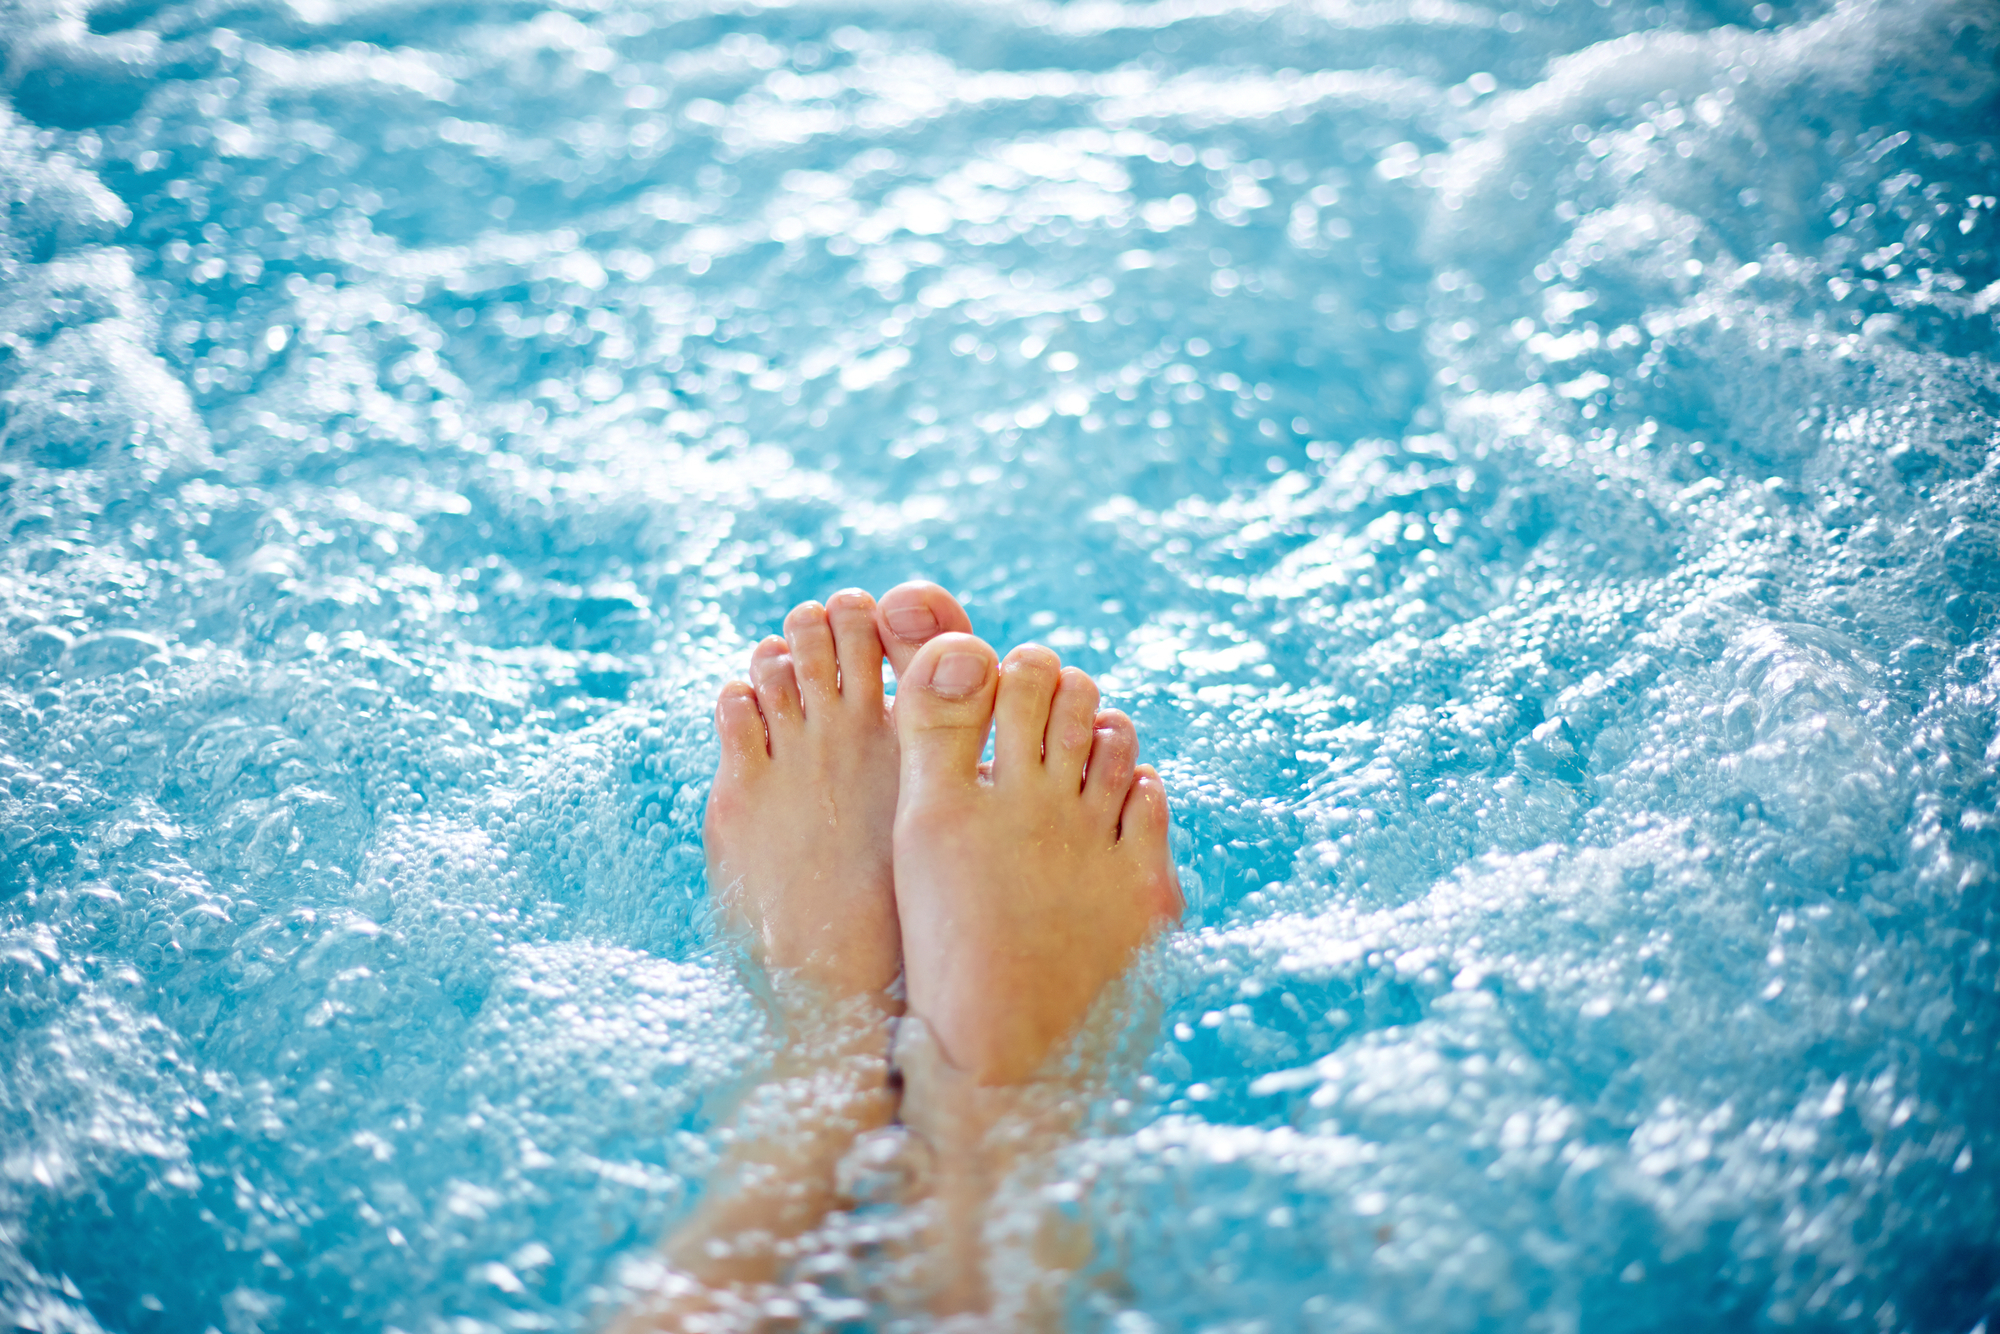 Getting a Hot Tub? 3 Fun Activities You Can Enjoy - Tri-County Stove ...